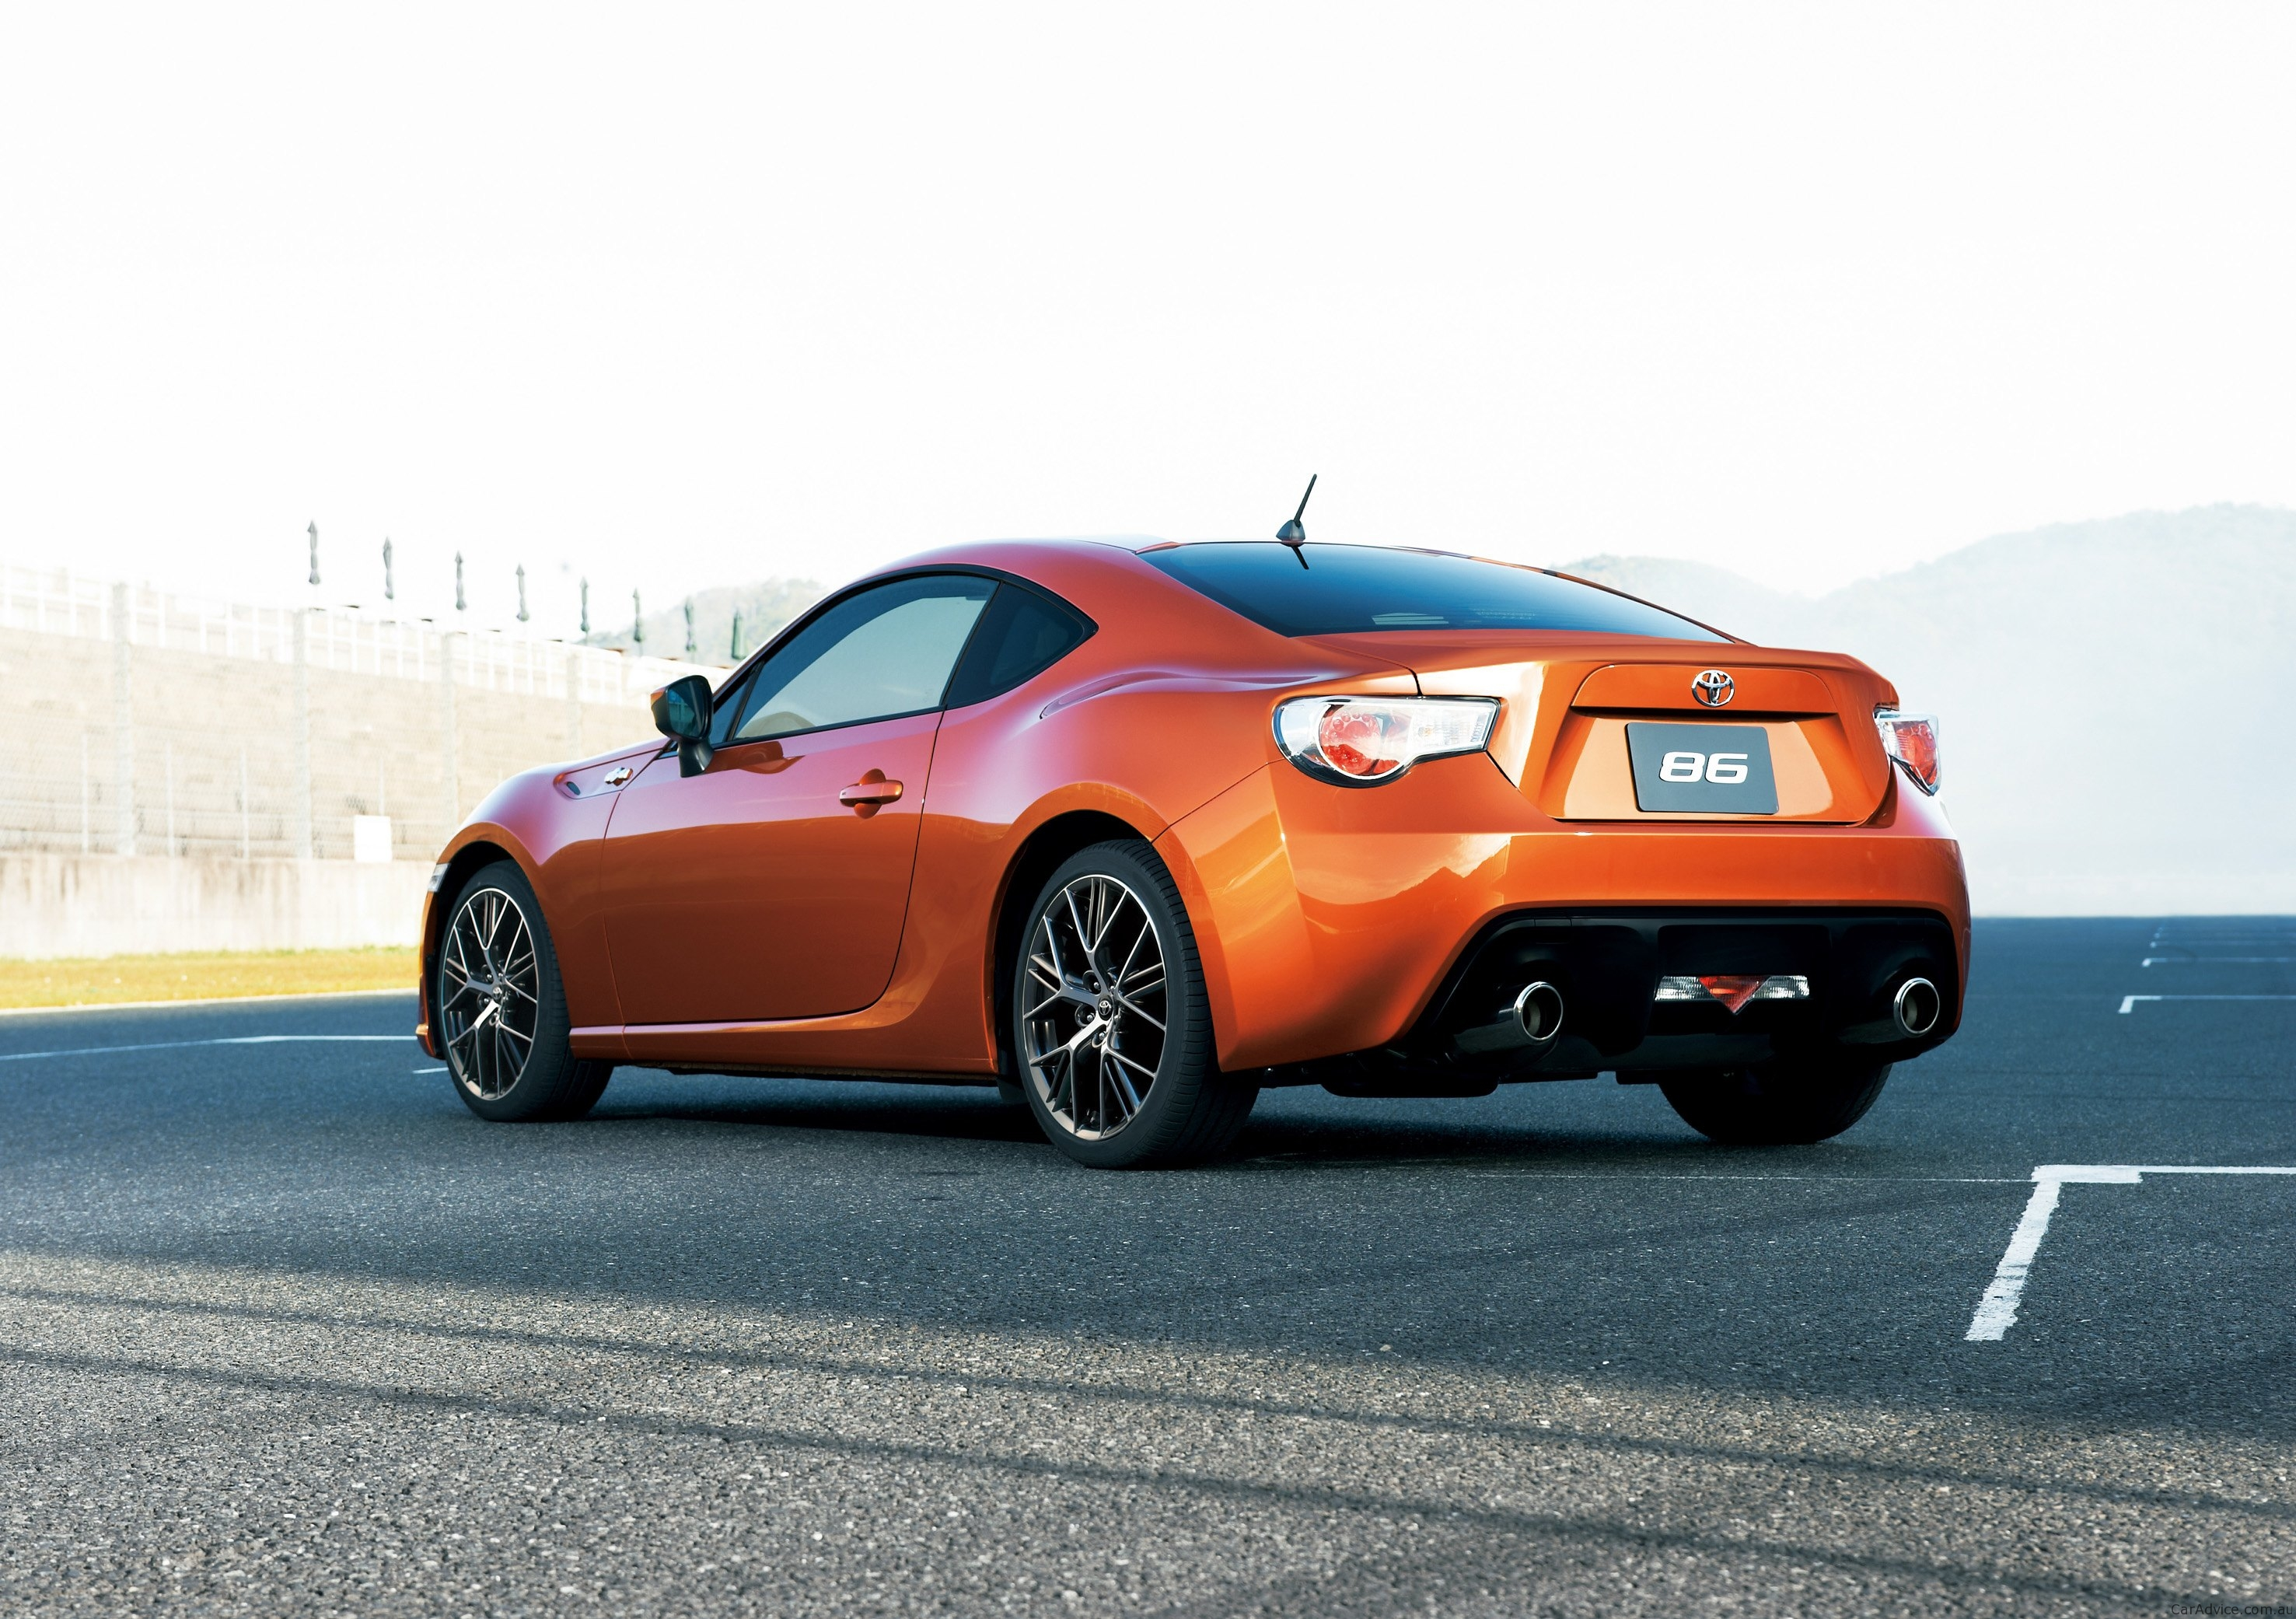 Toyota 86 sports car revealed: official pictures & details ...